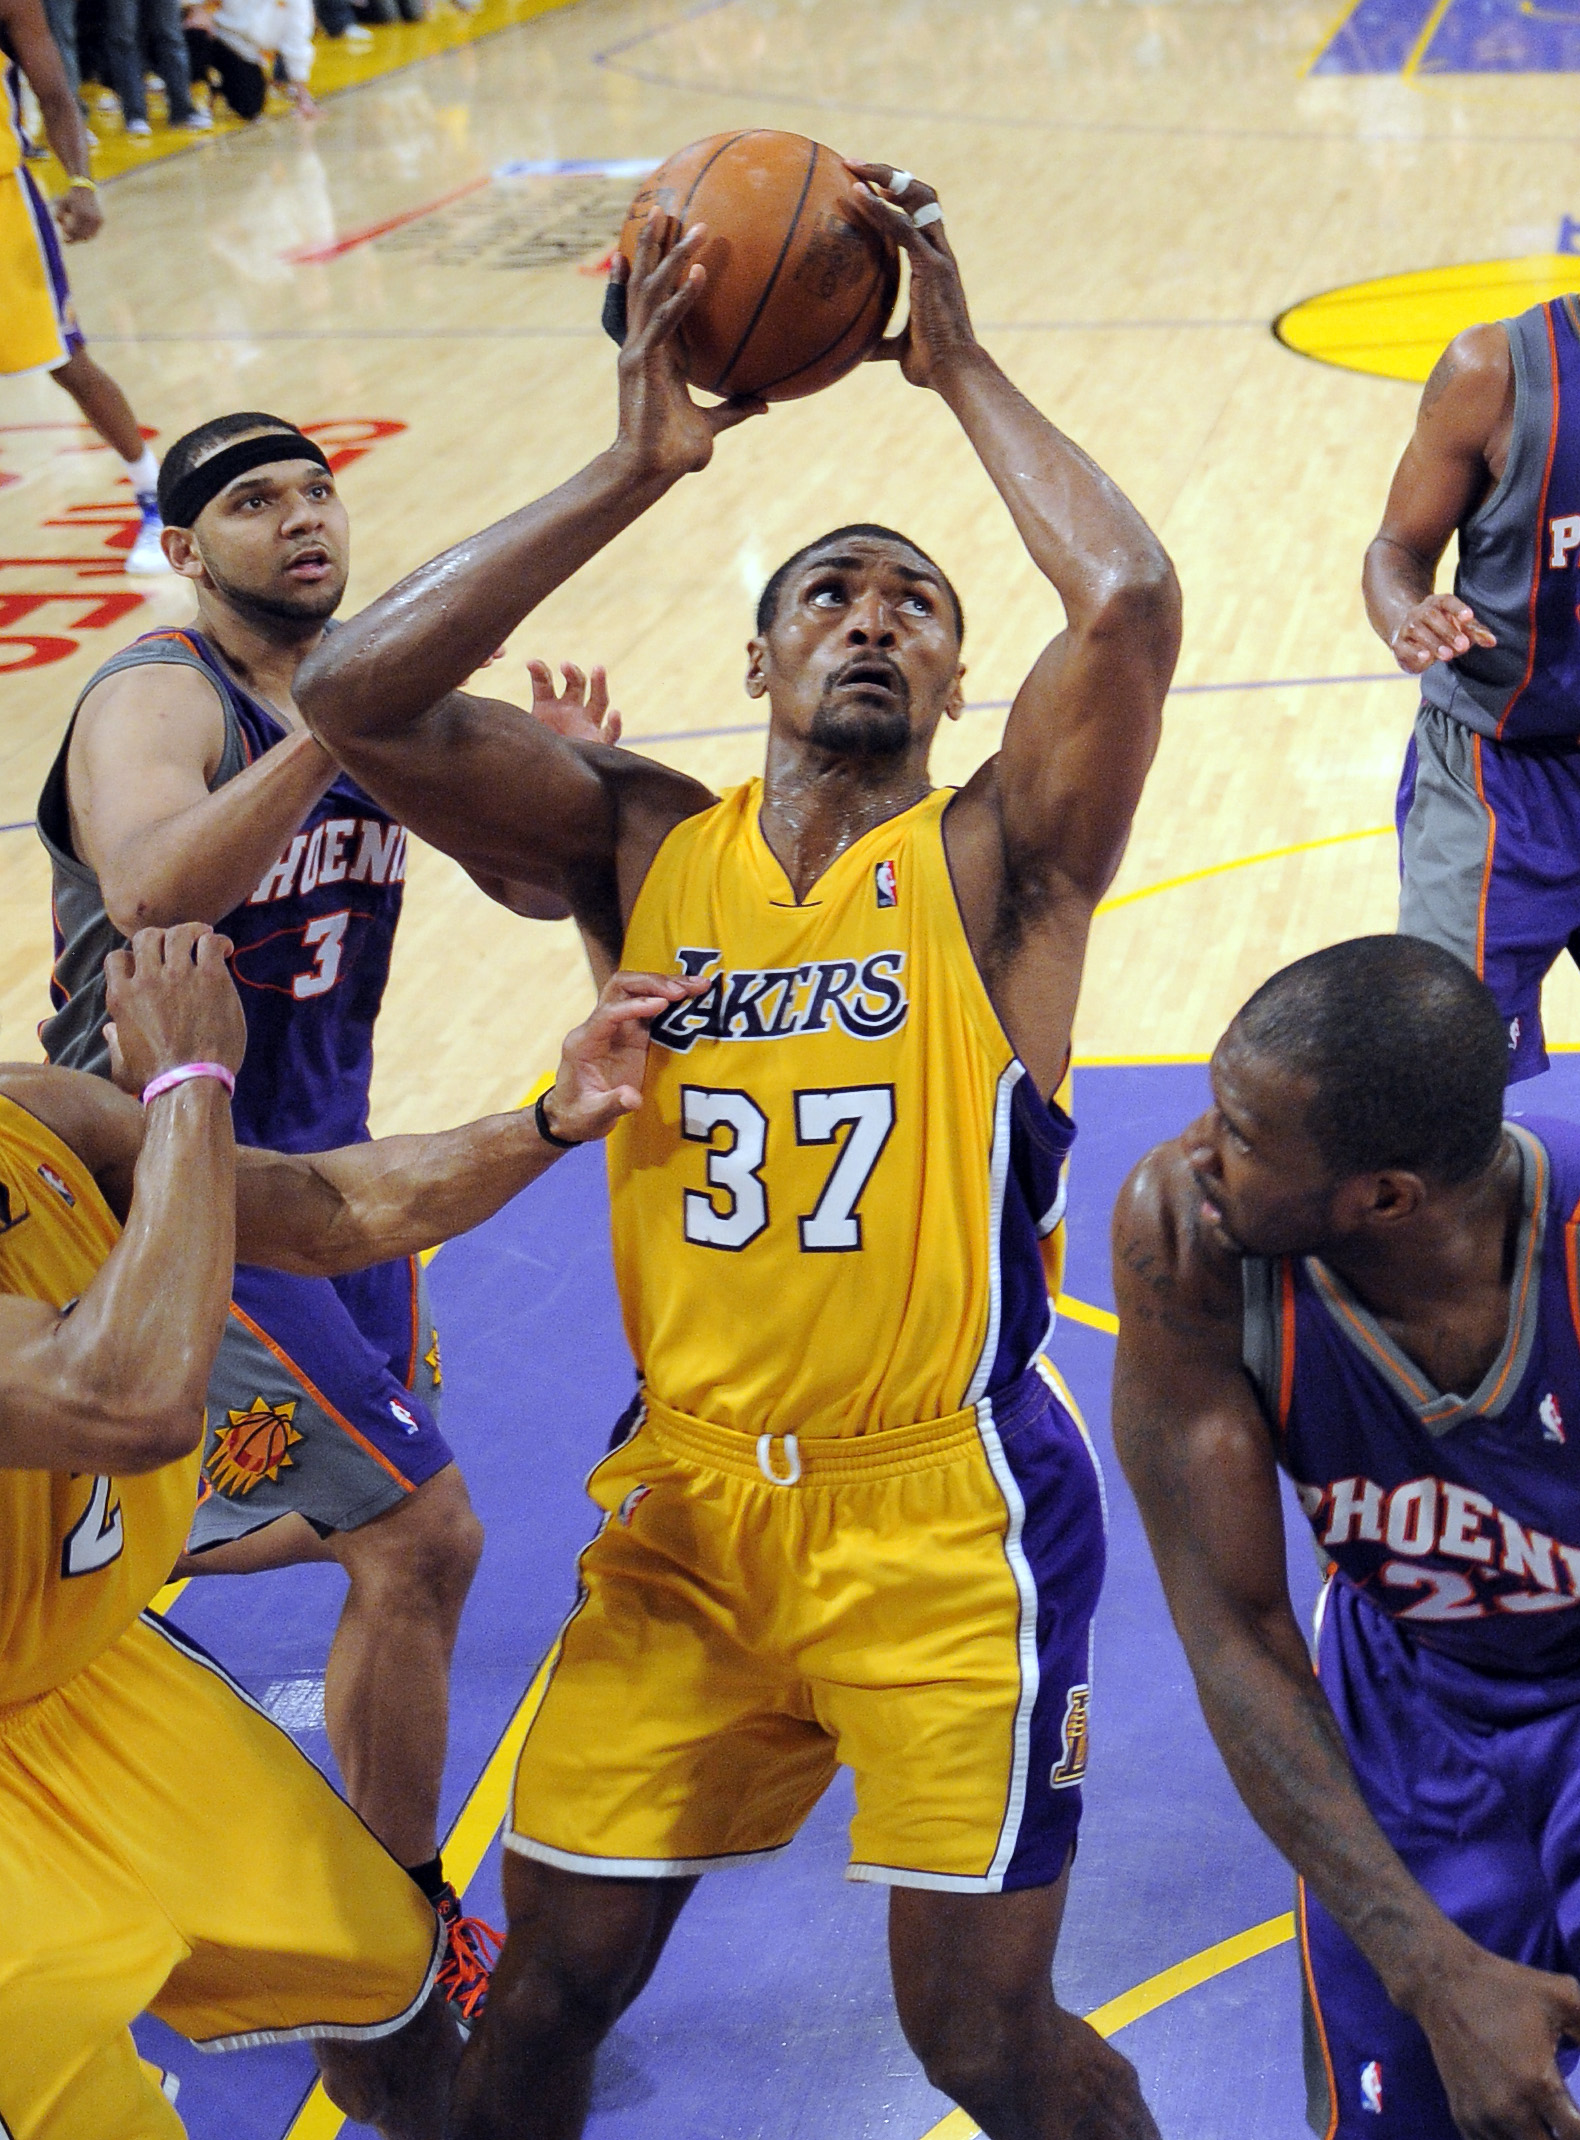 Los Angeles Lakers forward Ron Artest puts up the winning shot as Phoenix Suns forward Jared Dudley, left, and guard Jason Richardson look on during t...